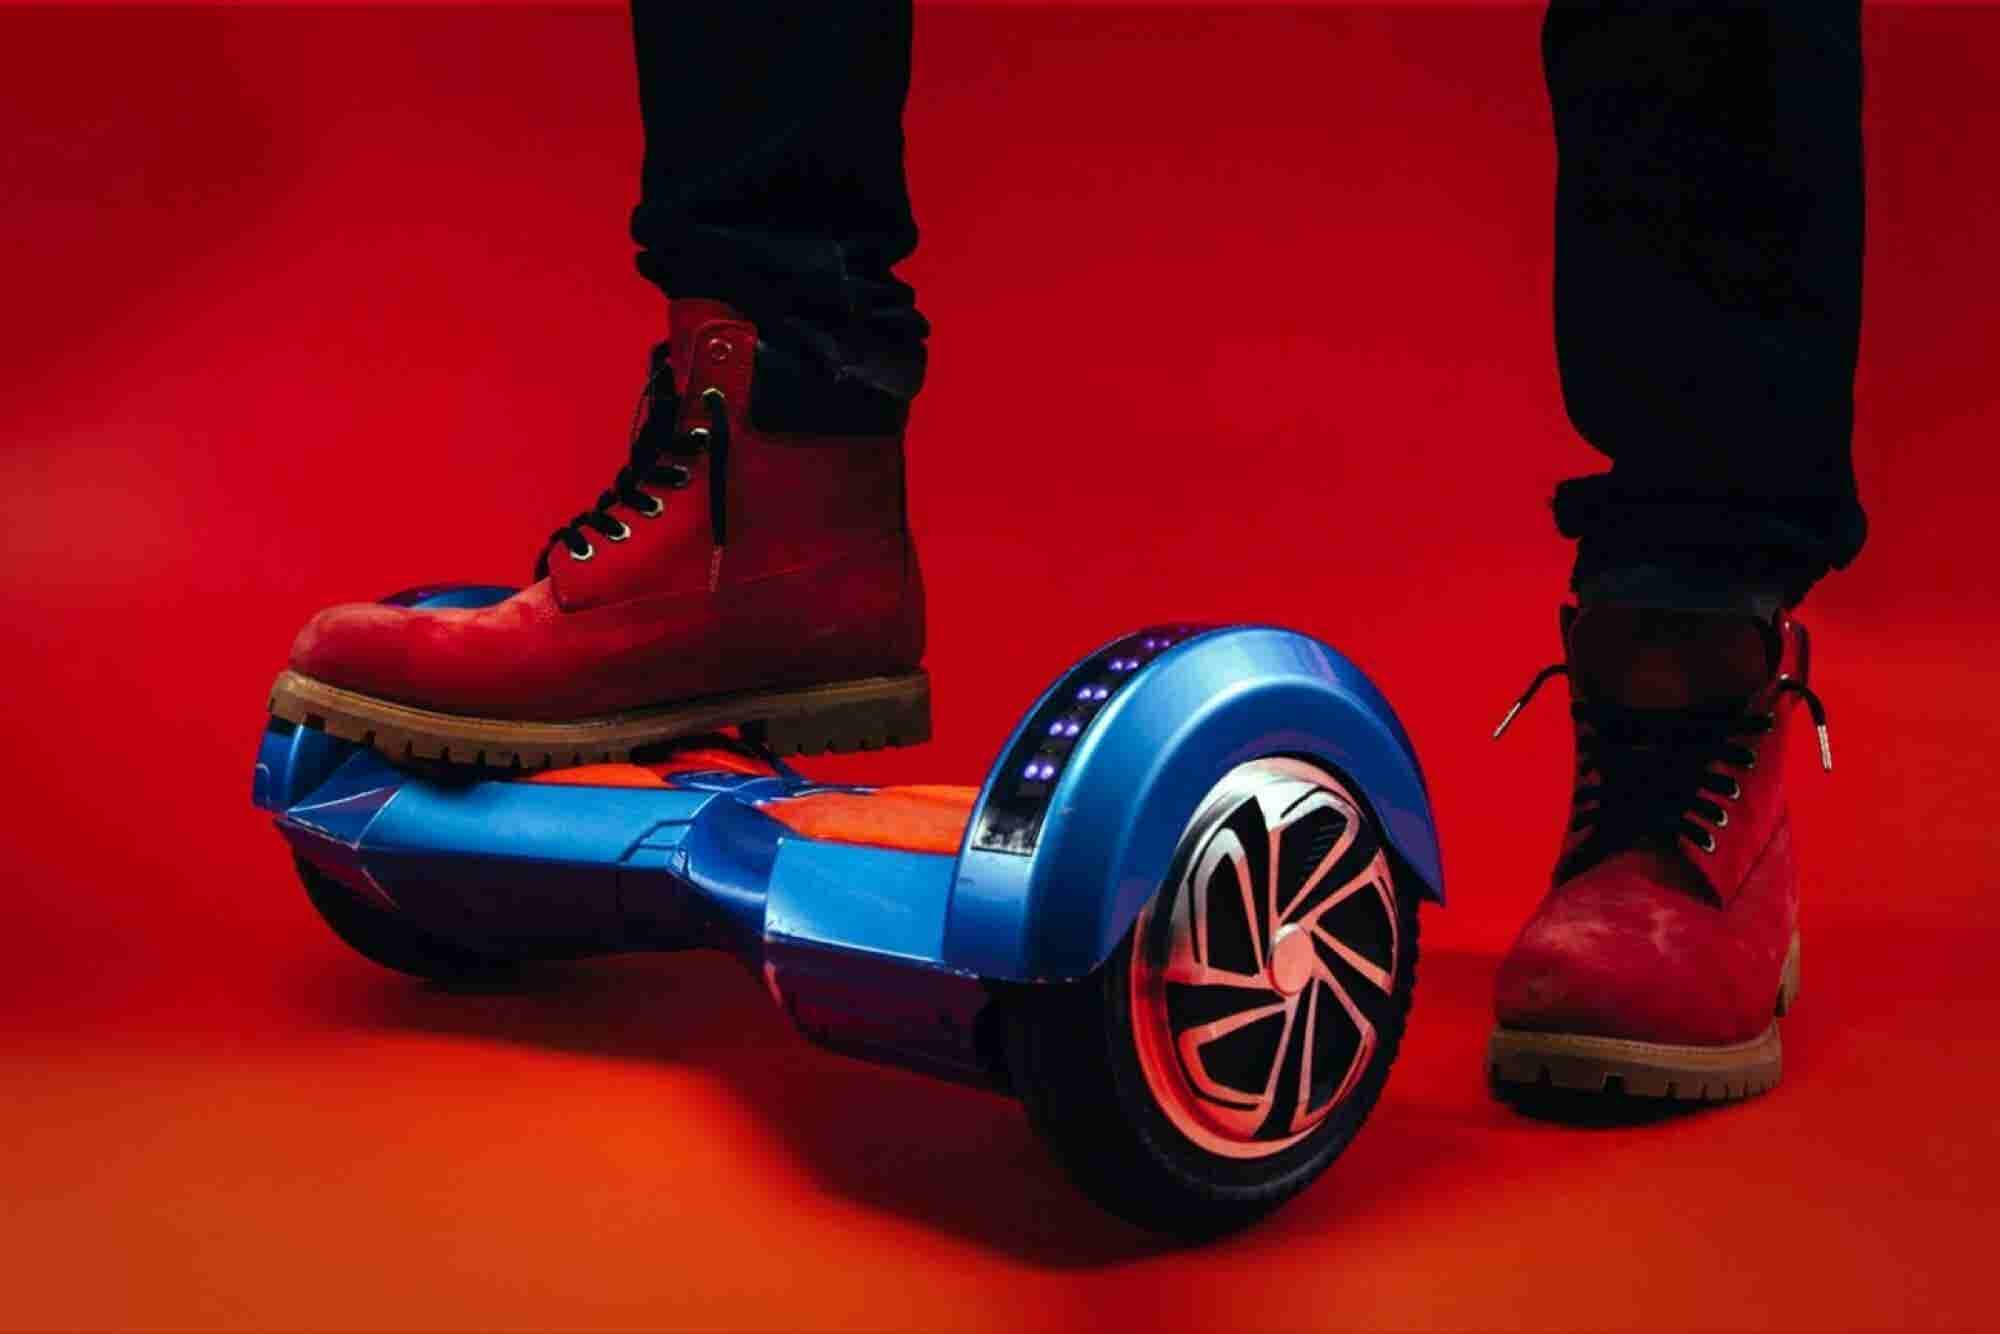 Regulators Are Investigating Exploding Hoverboards